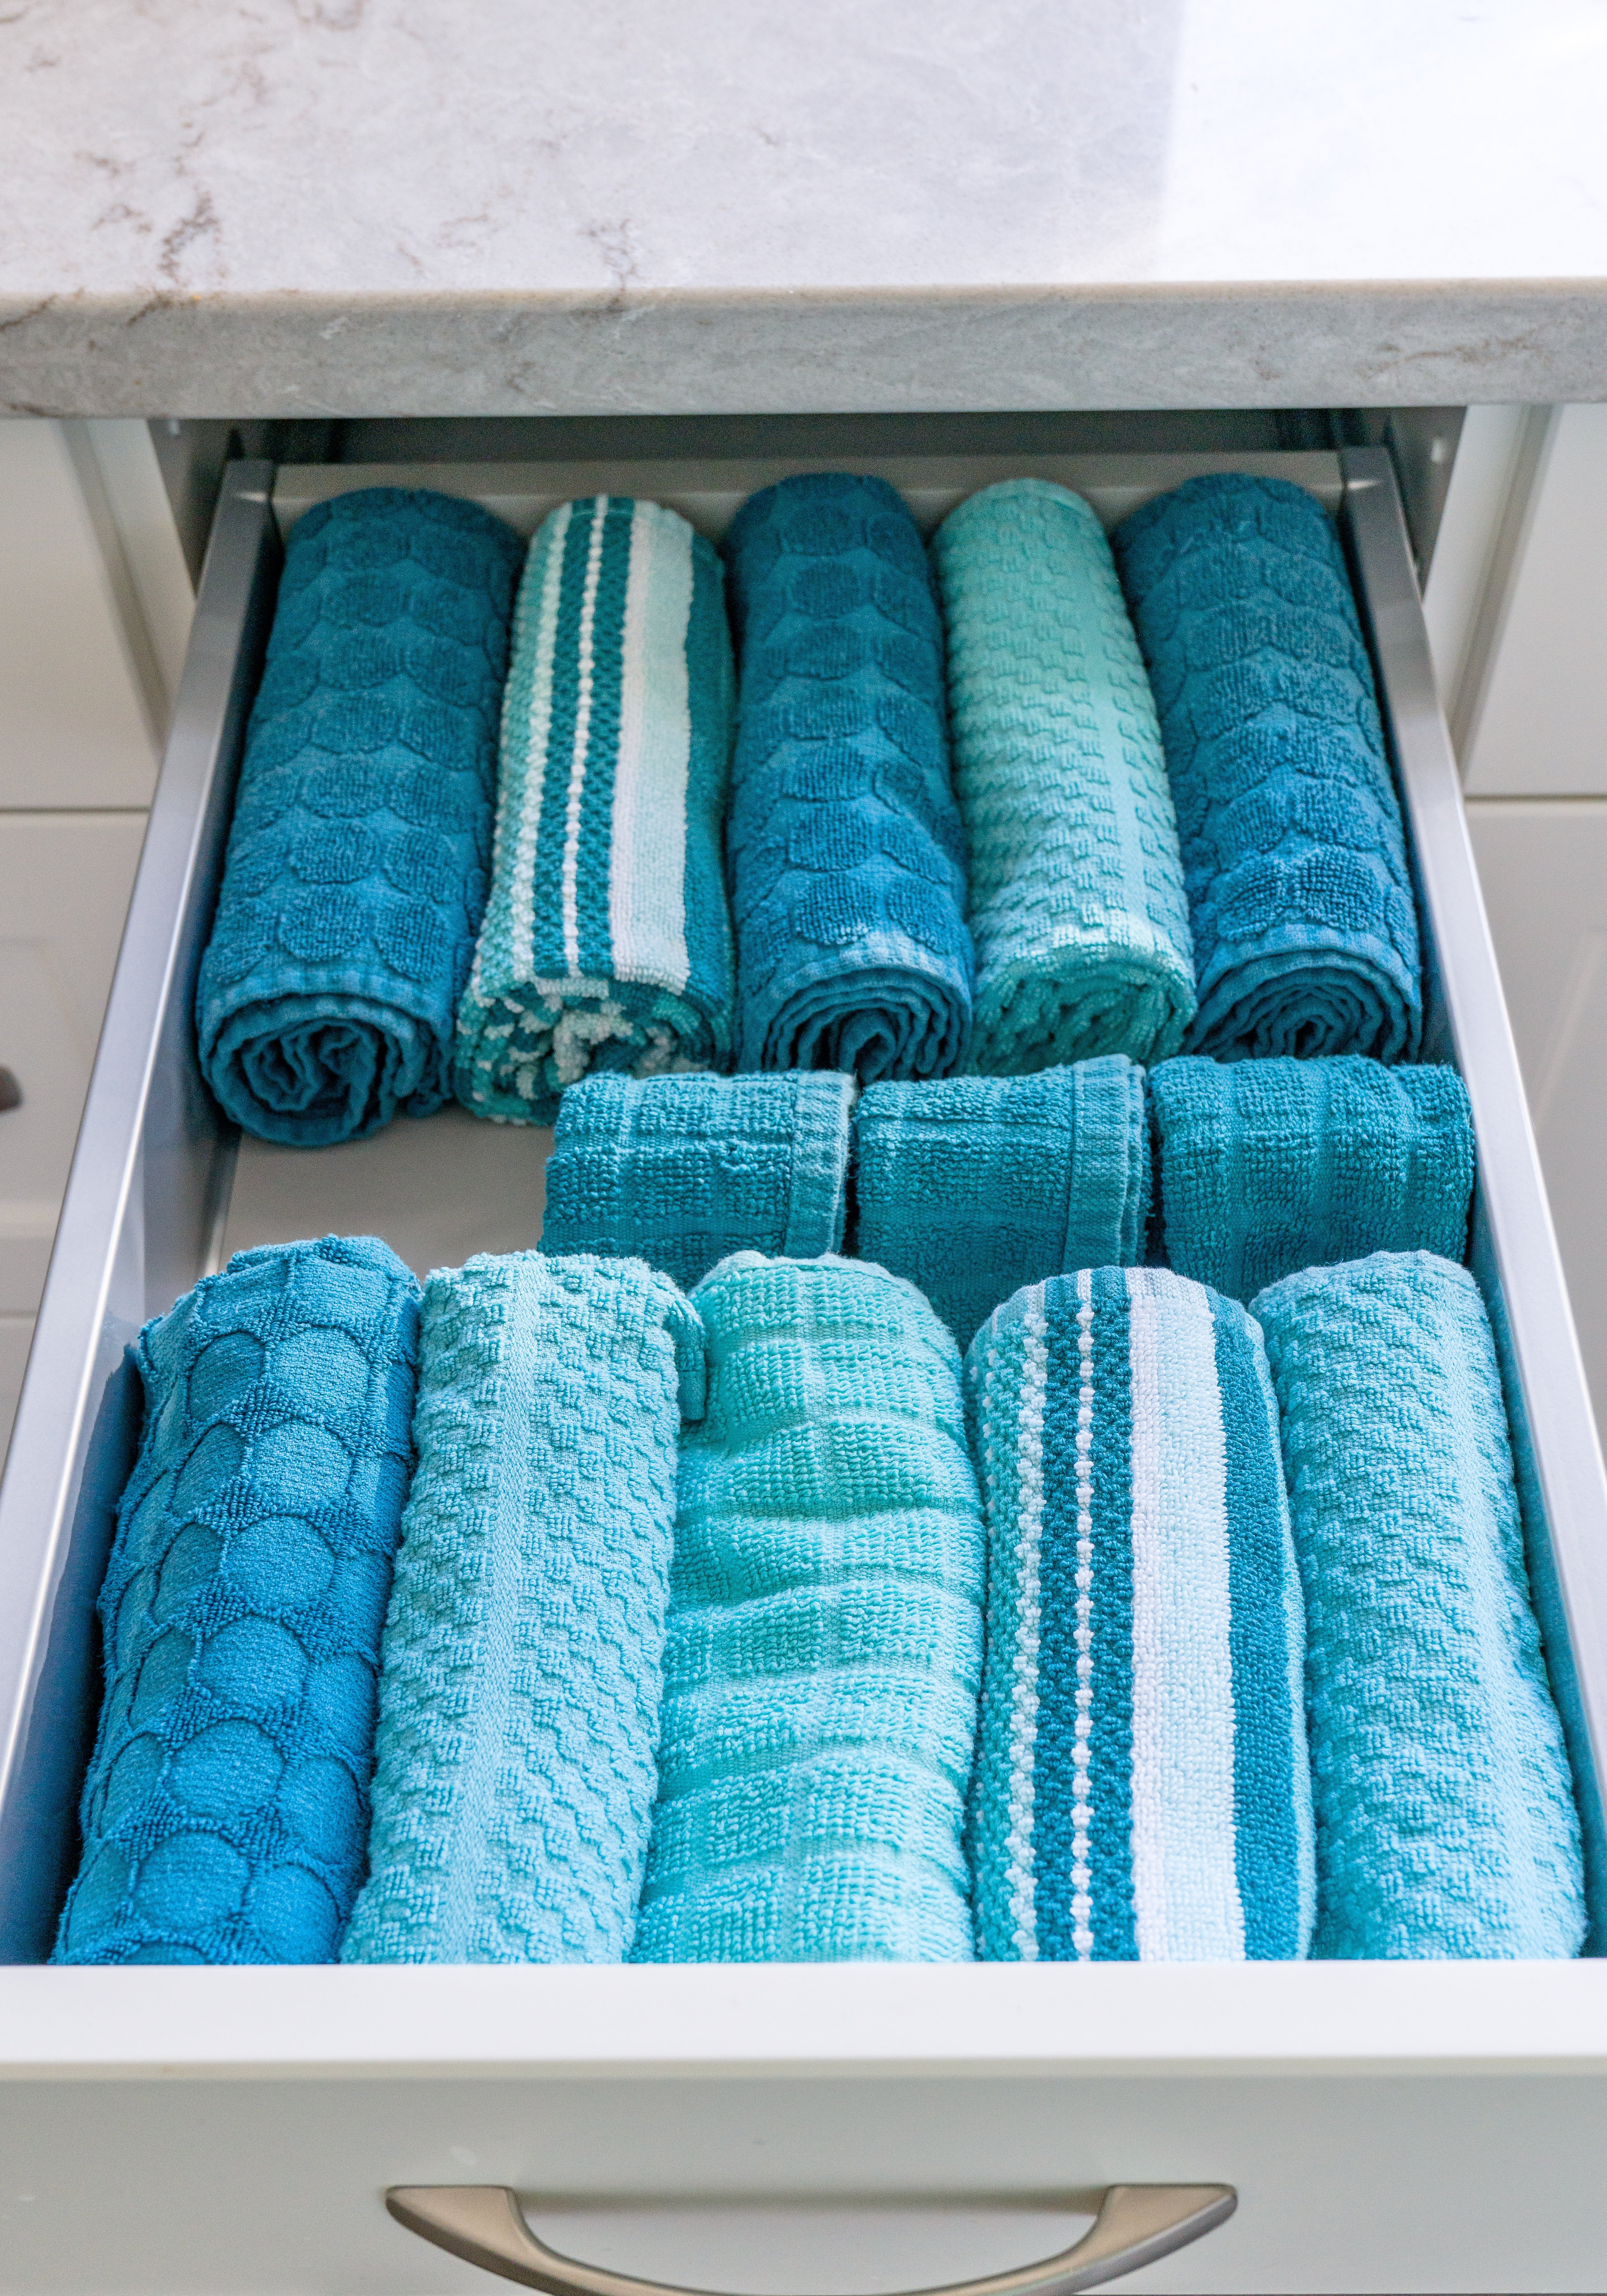 10 2kitchen drawer towels after - 10 Budget Home Organizing Products Under $20.00